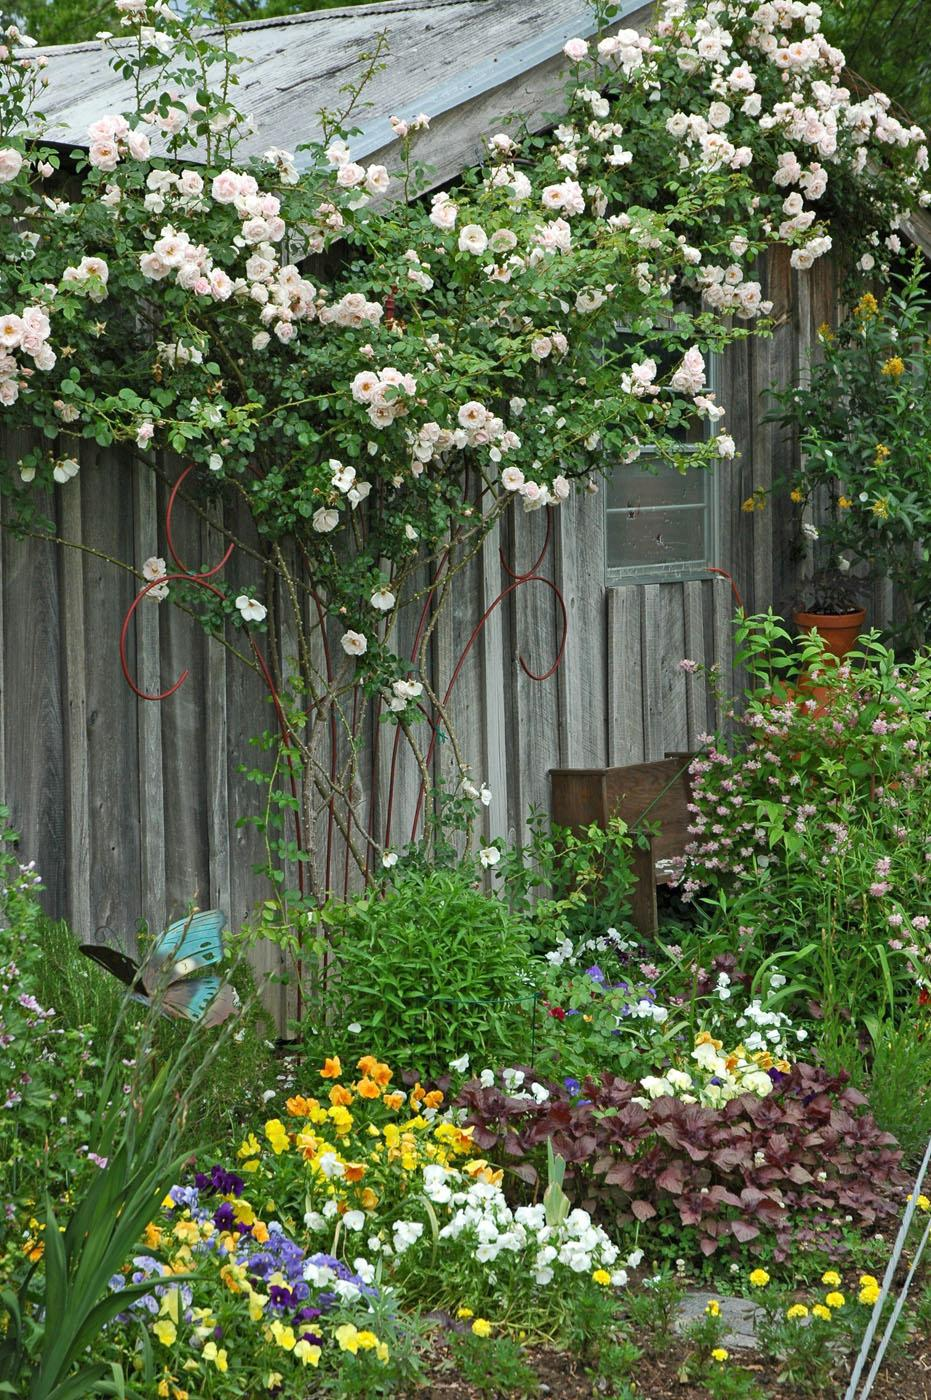 Climbing plants add a vertical dimension to the landscape. A New Dawn climbing rose was trained to grow up this cottage-style garden shed.